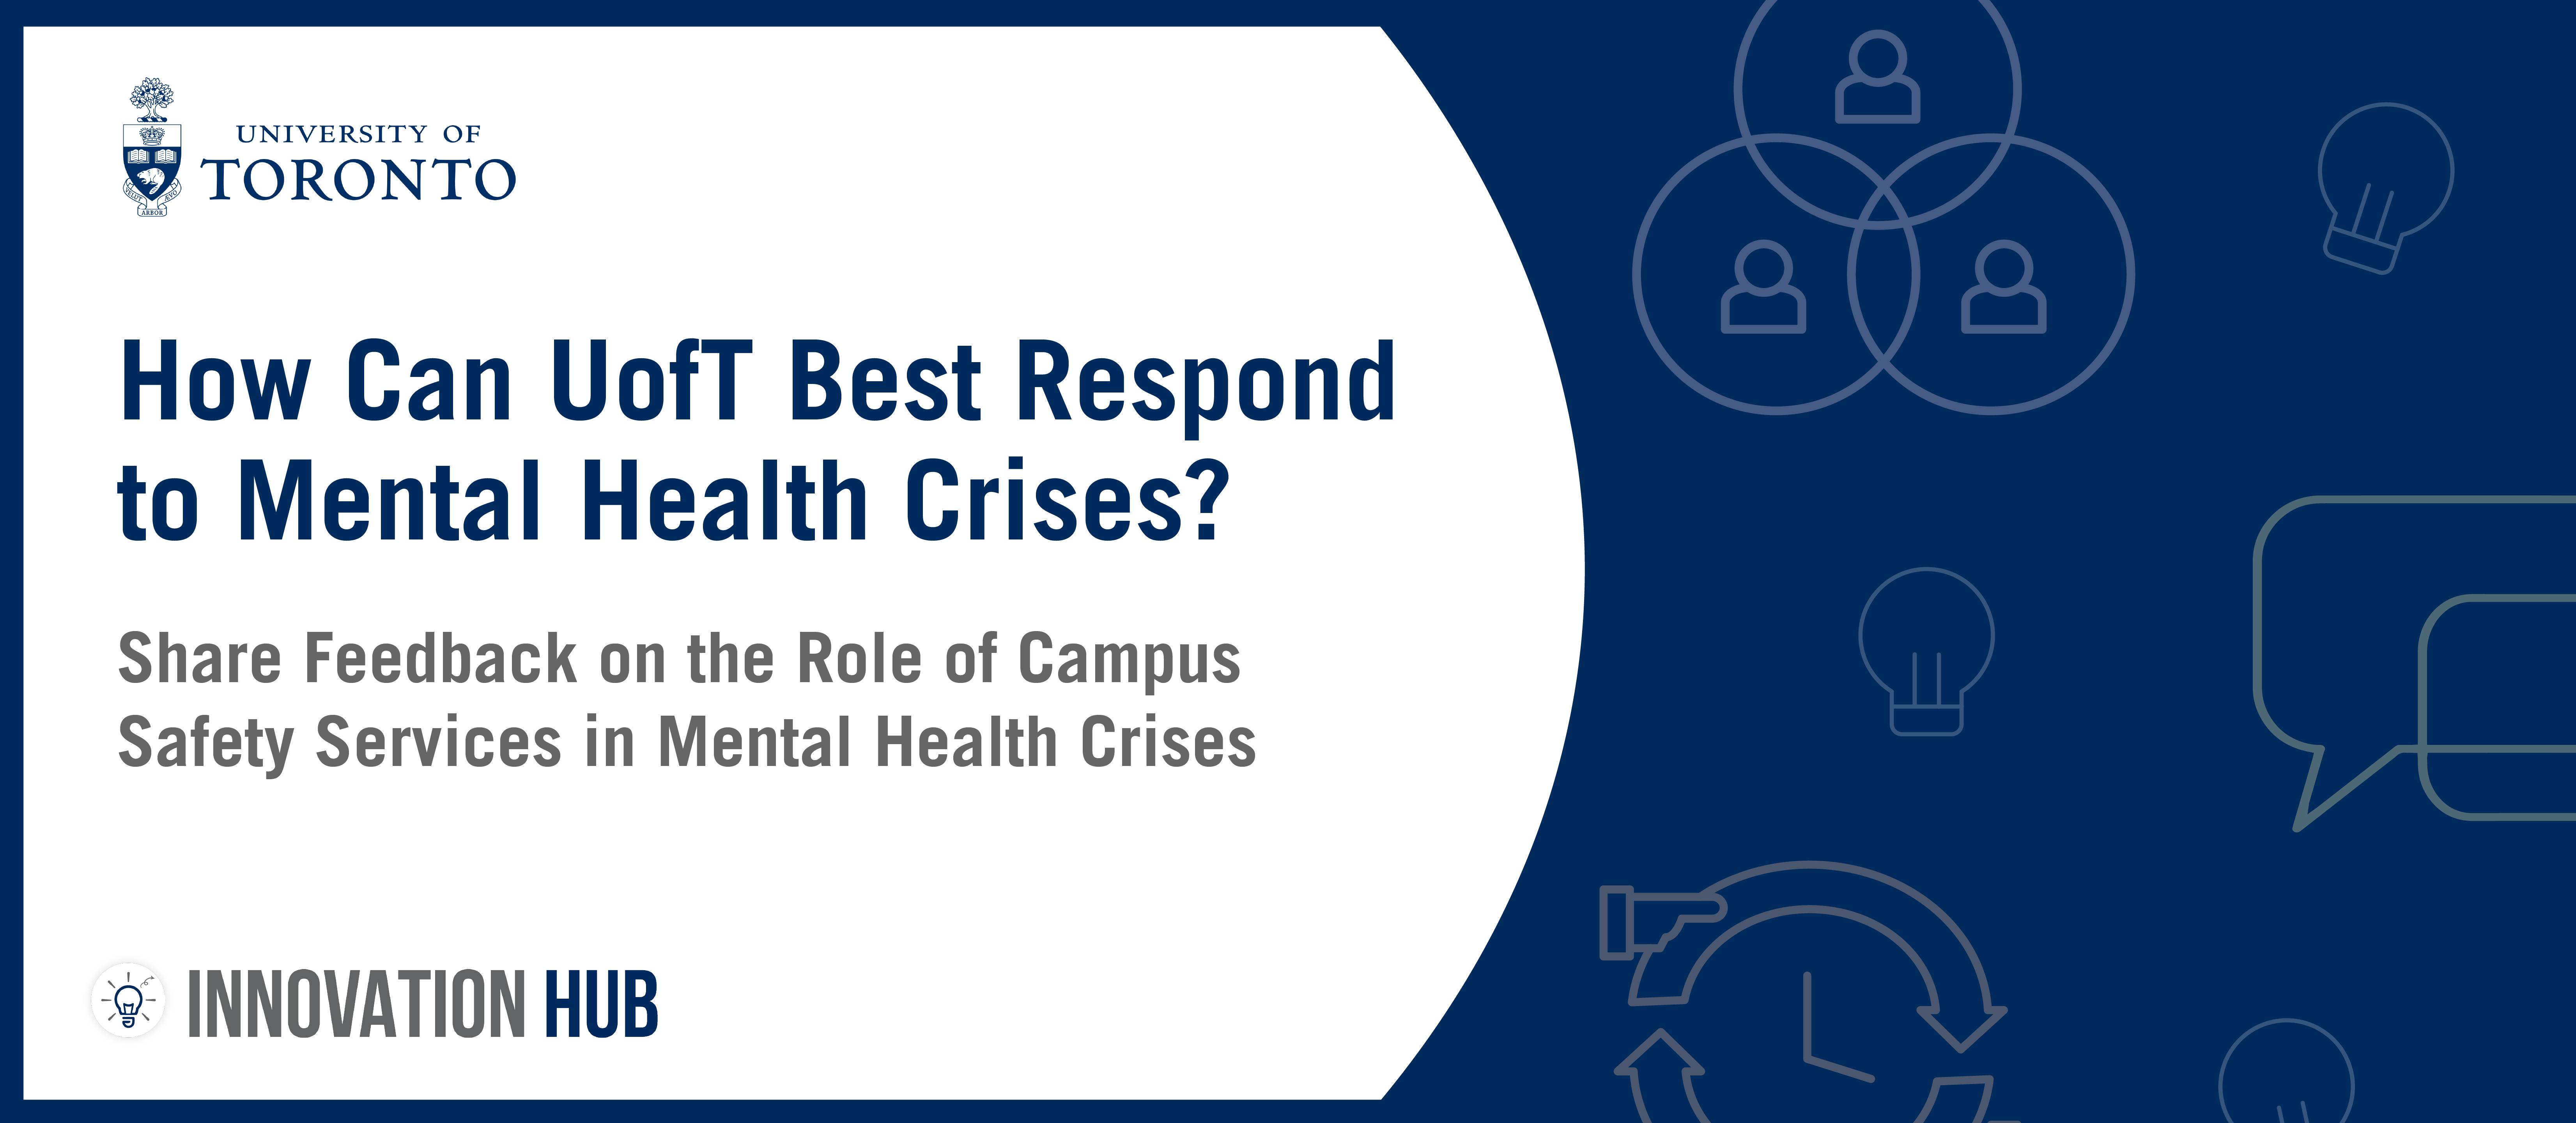 """A blue and white graphic that reads """"How can UofT Best Respond to Mental Health Crises?"""" There are icons representing conversation, ideas, and collaboration."""